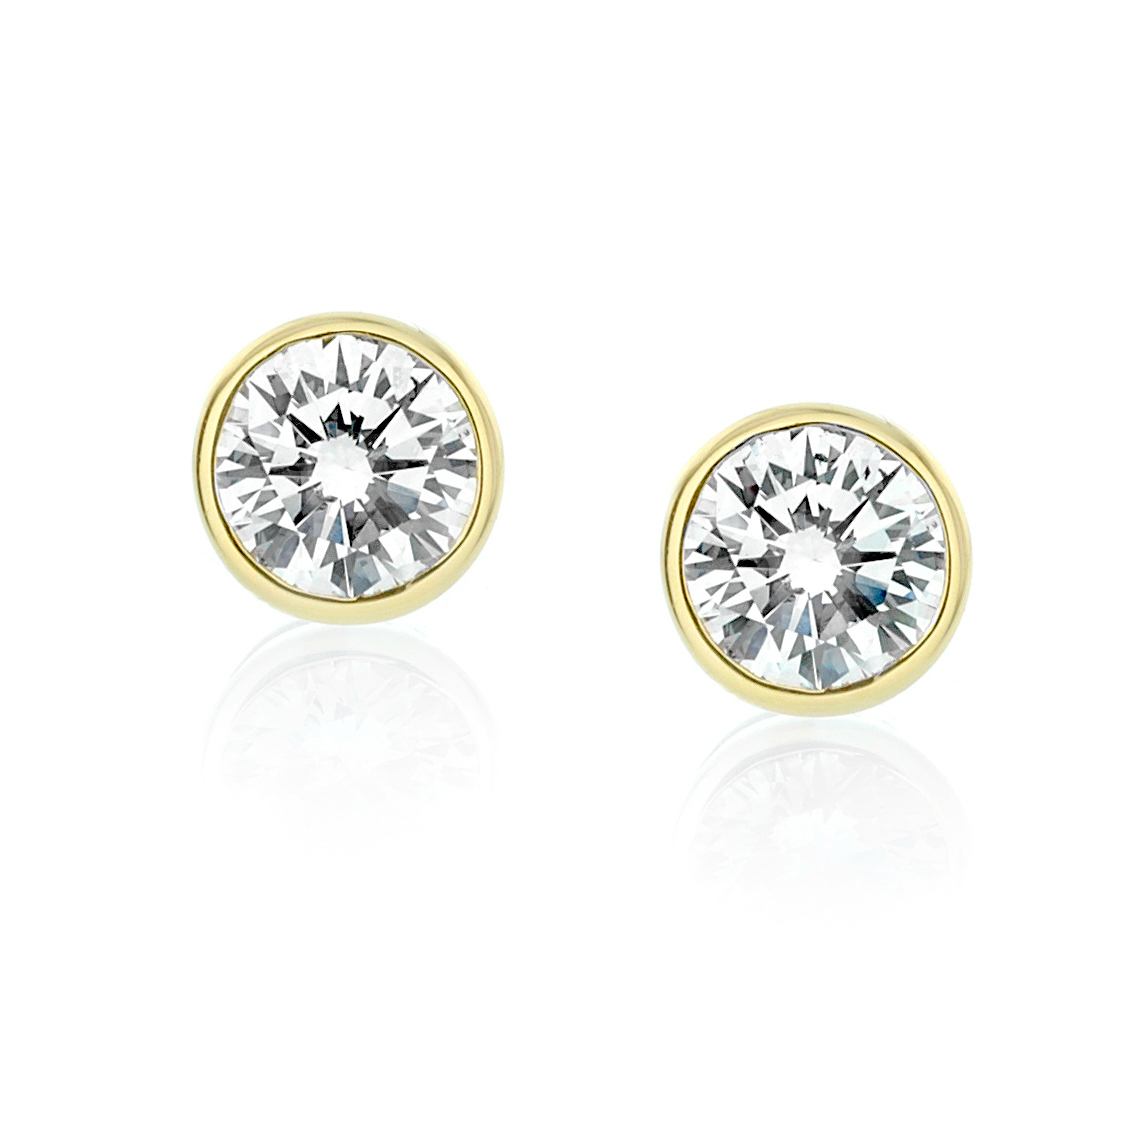 earrings item silver bezel from gemstone solid set fine jewelry hutang stud s sterling in accessories aquamarine gift natural women